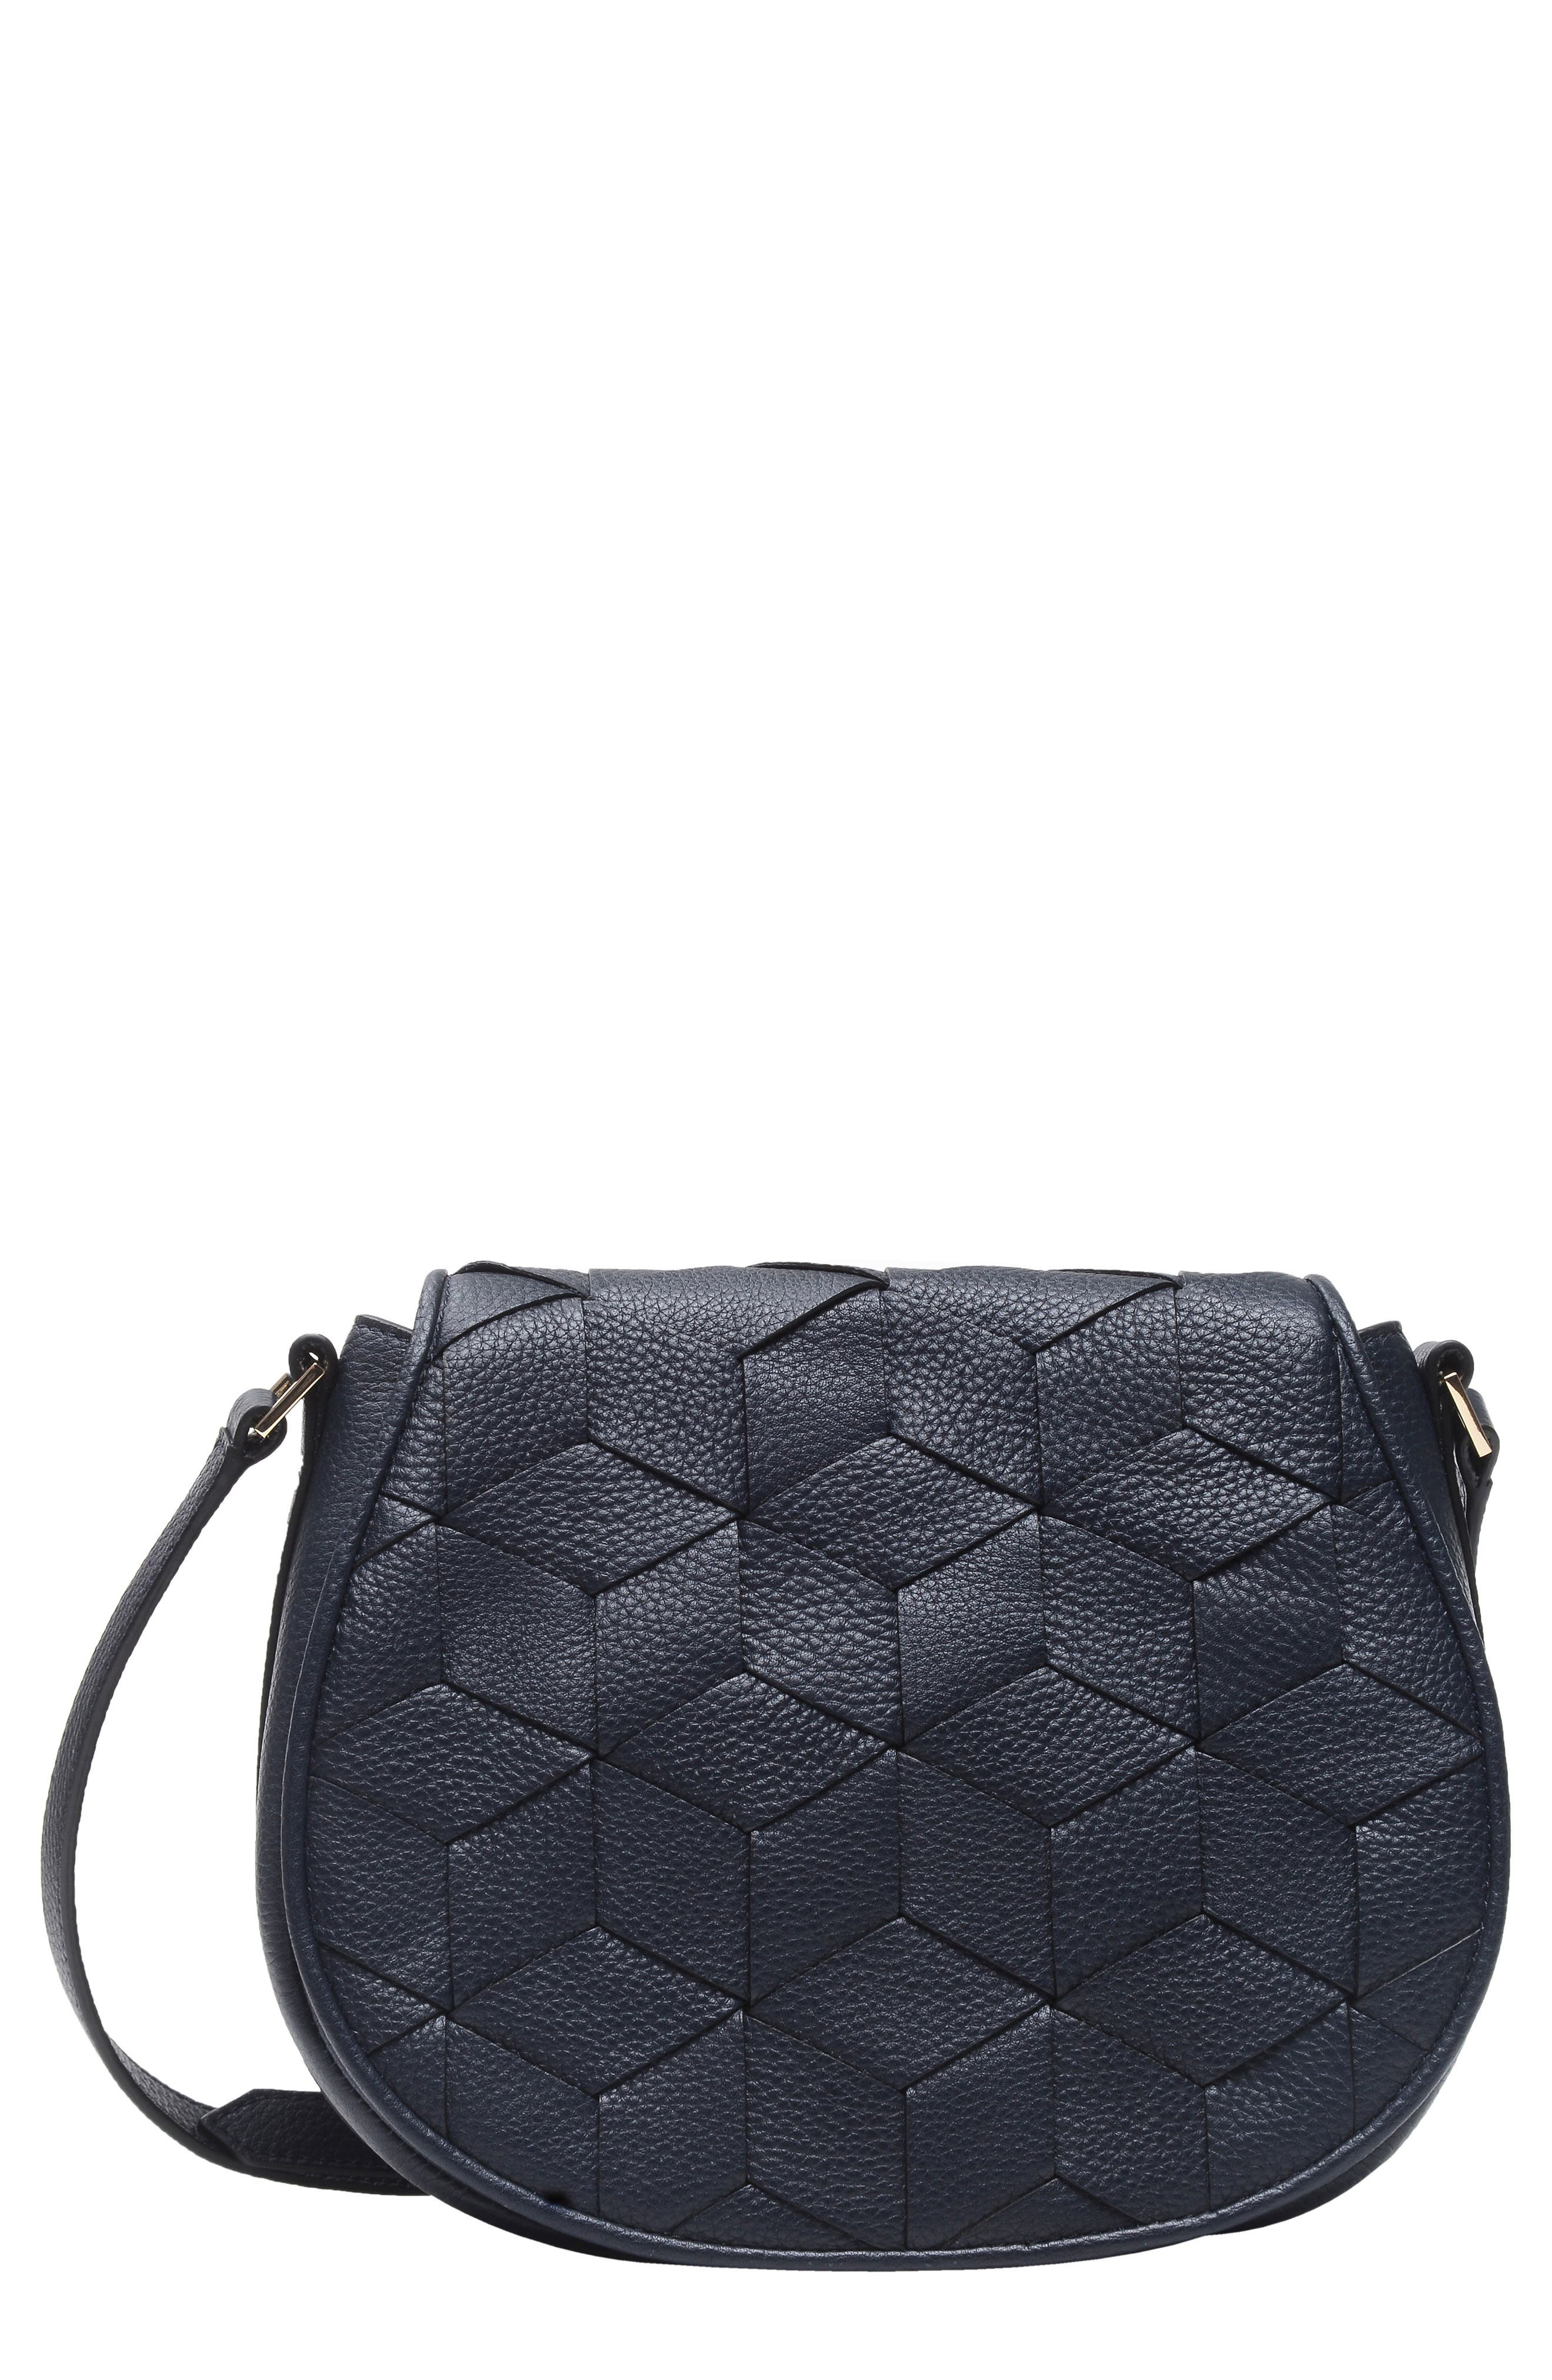 Escapade Pebbled Leather Saddle Bag,                         Main,                         color, NAVY